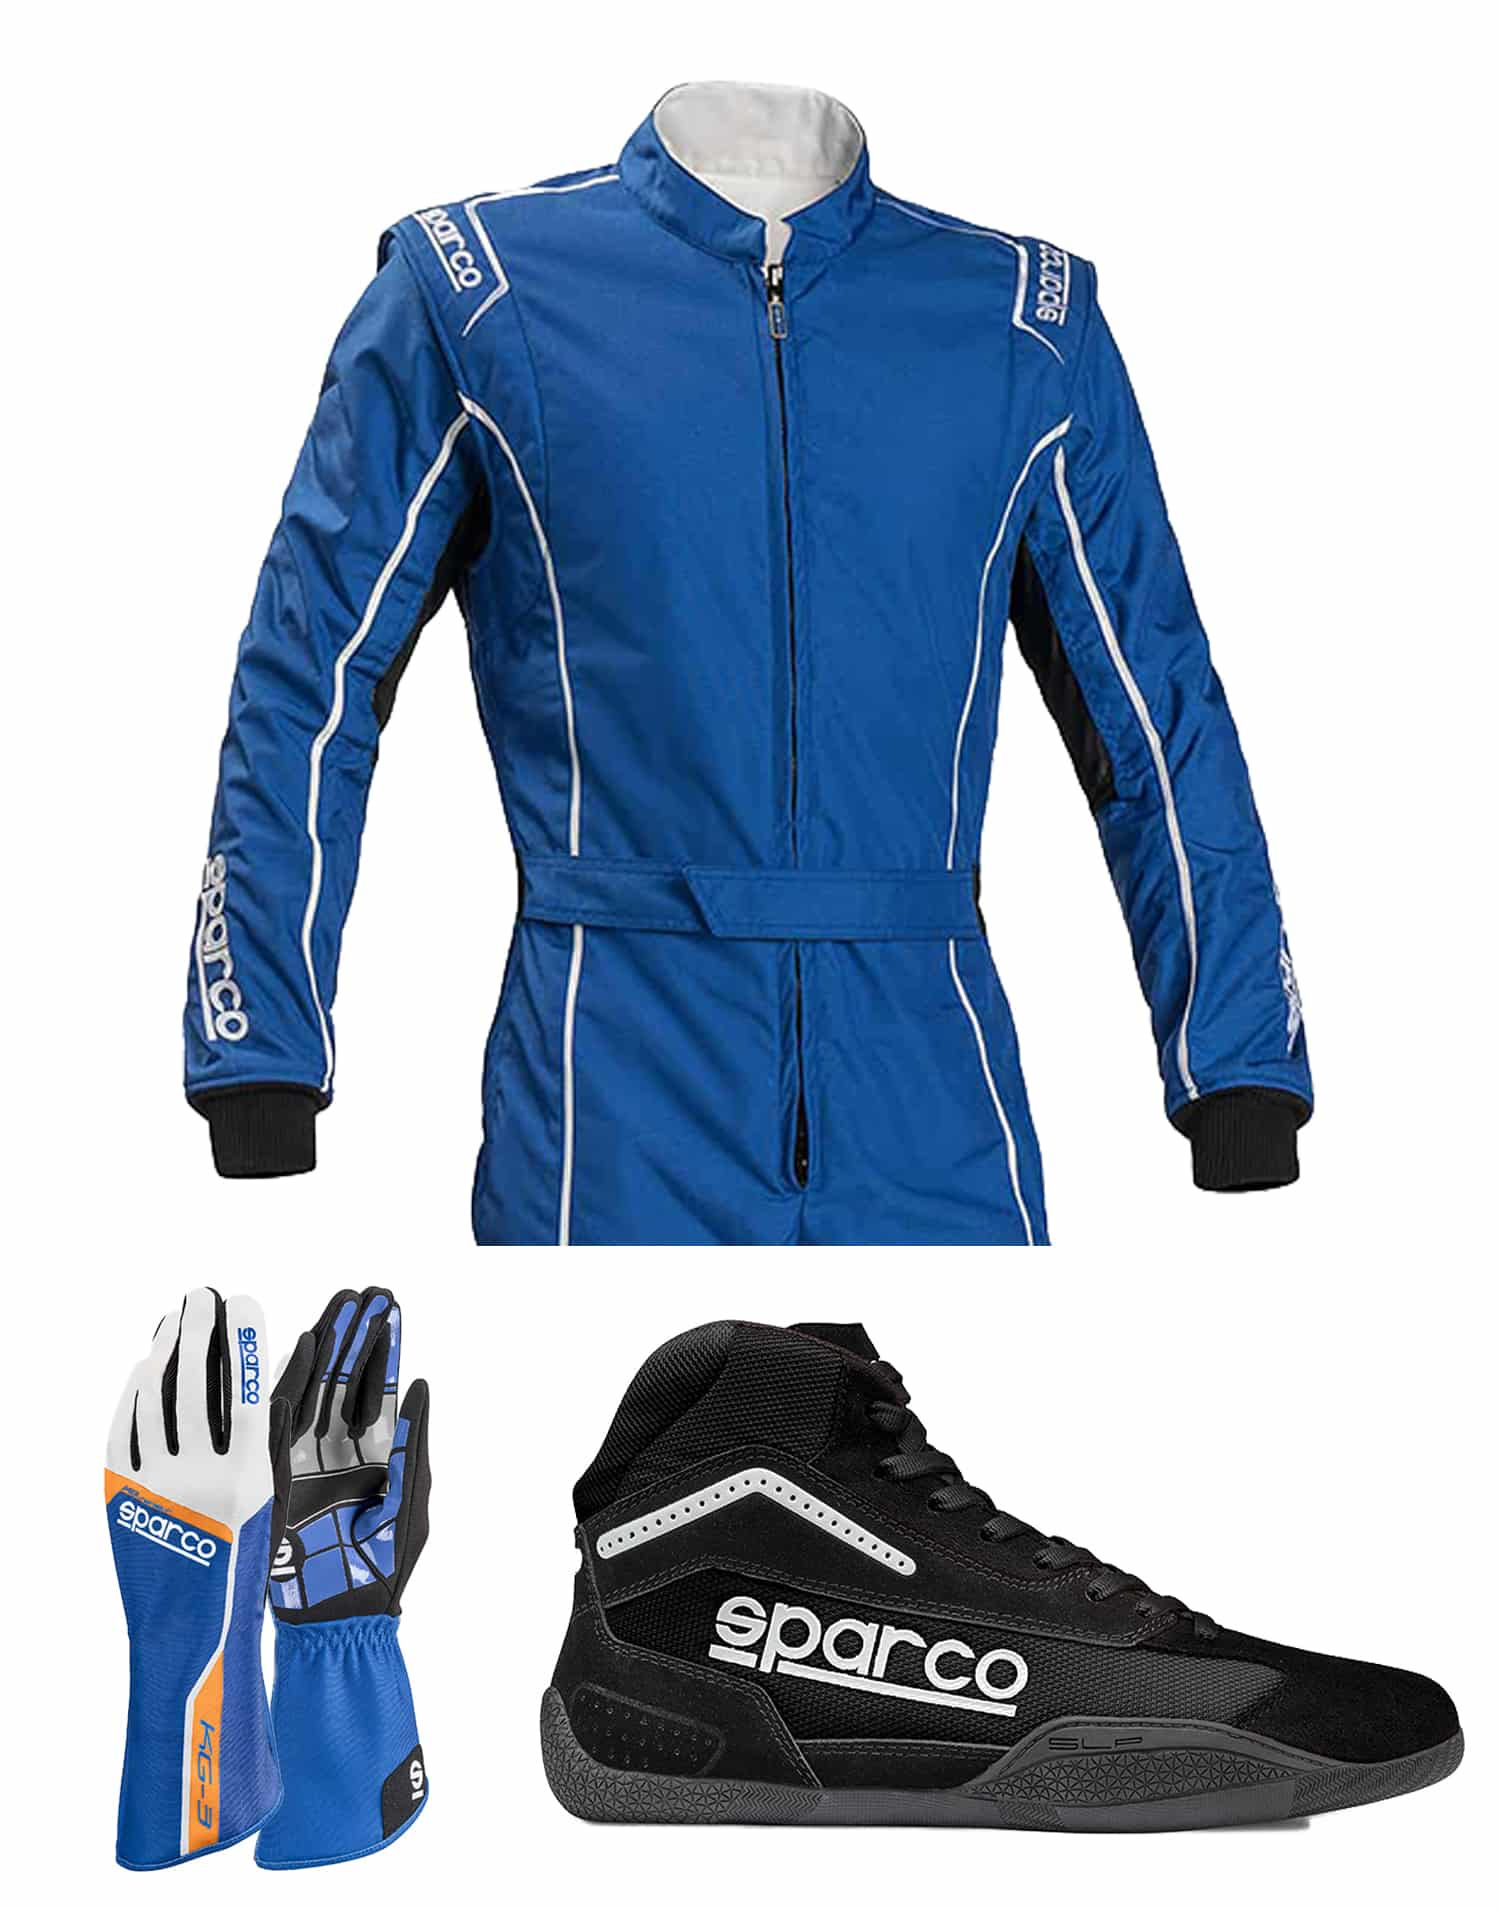 Correct Race Gear - - Suit must be one piece, recommended to be of an abrasion resistant material- Full finger gloves- Boots that cover the ankle- Full face Helmet that is or exceeds, Australia Standard AS/NZS 1698:2006.